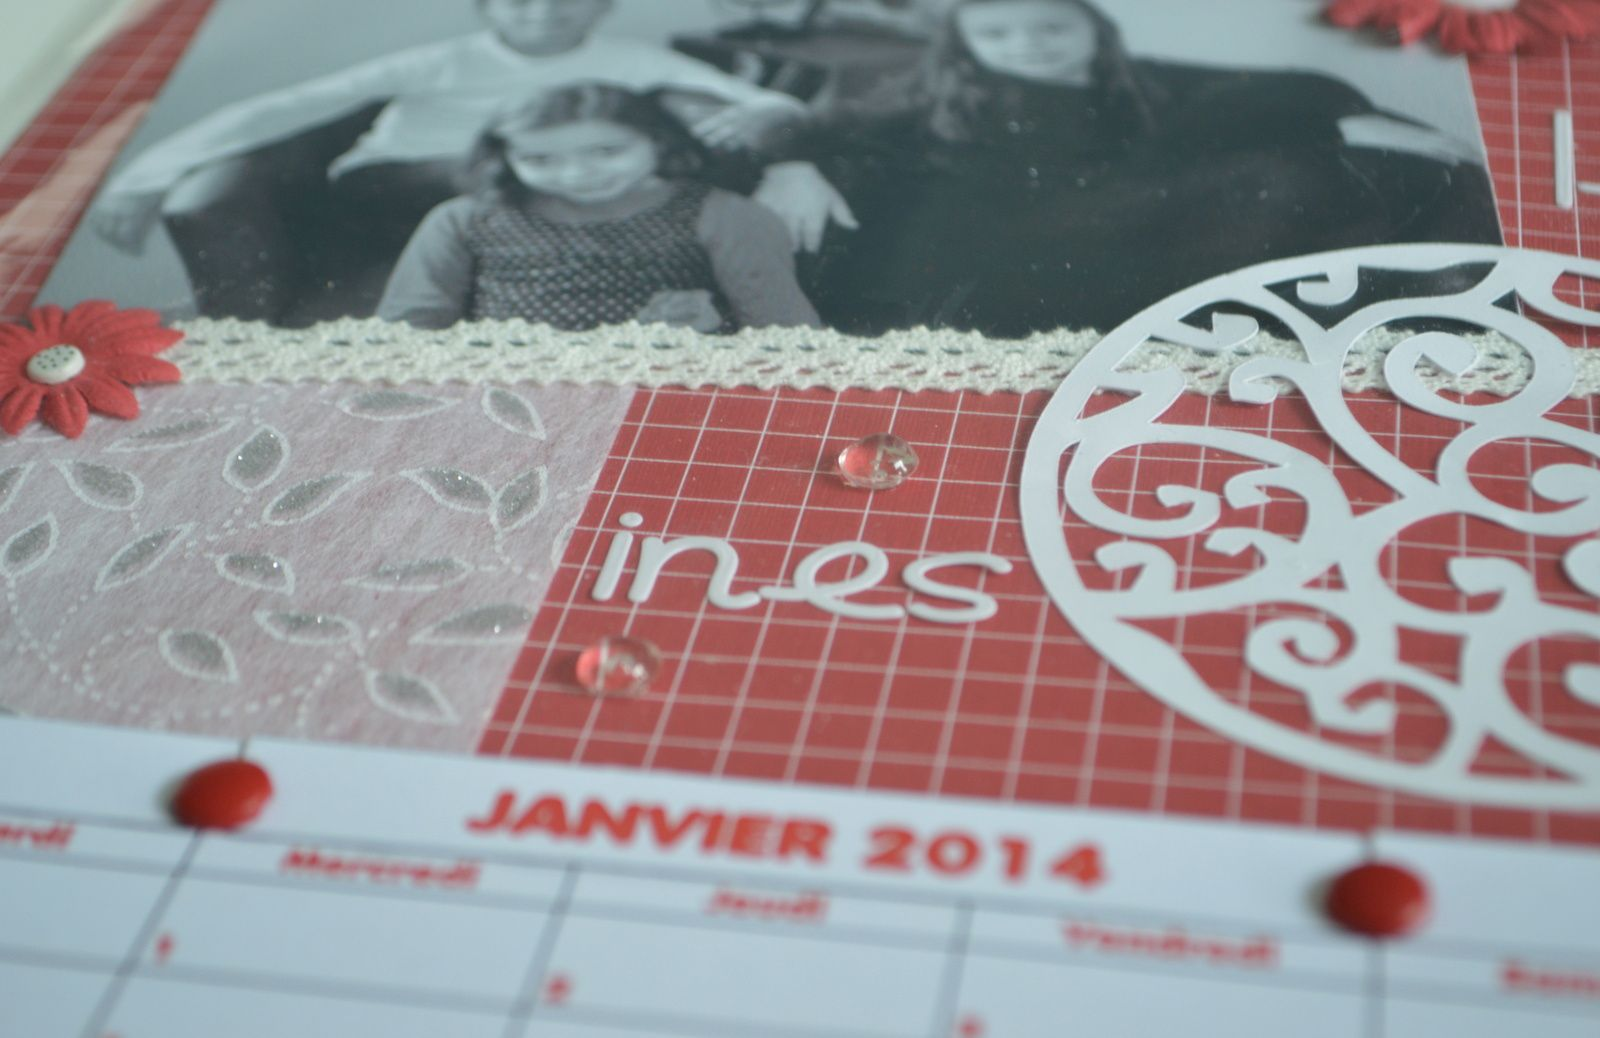 Calendriers version 2014!!